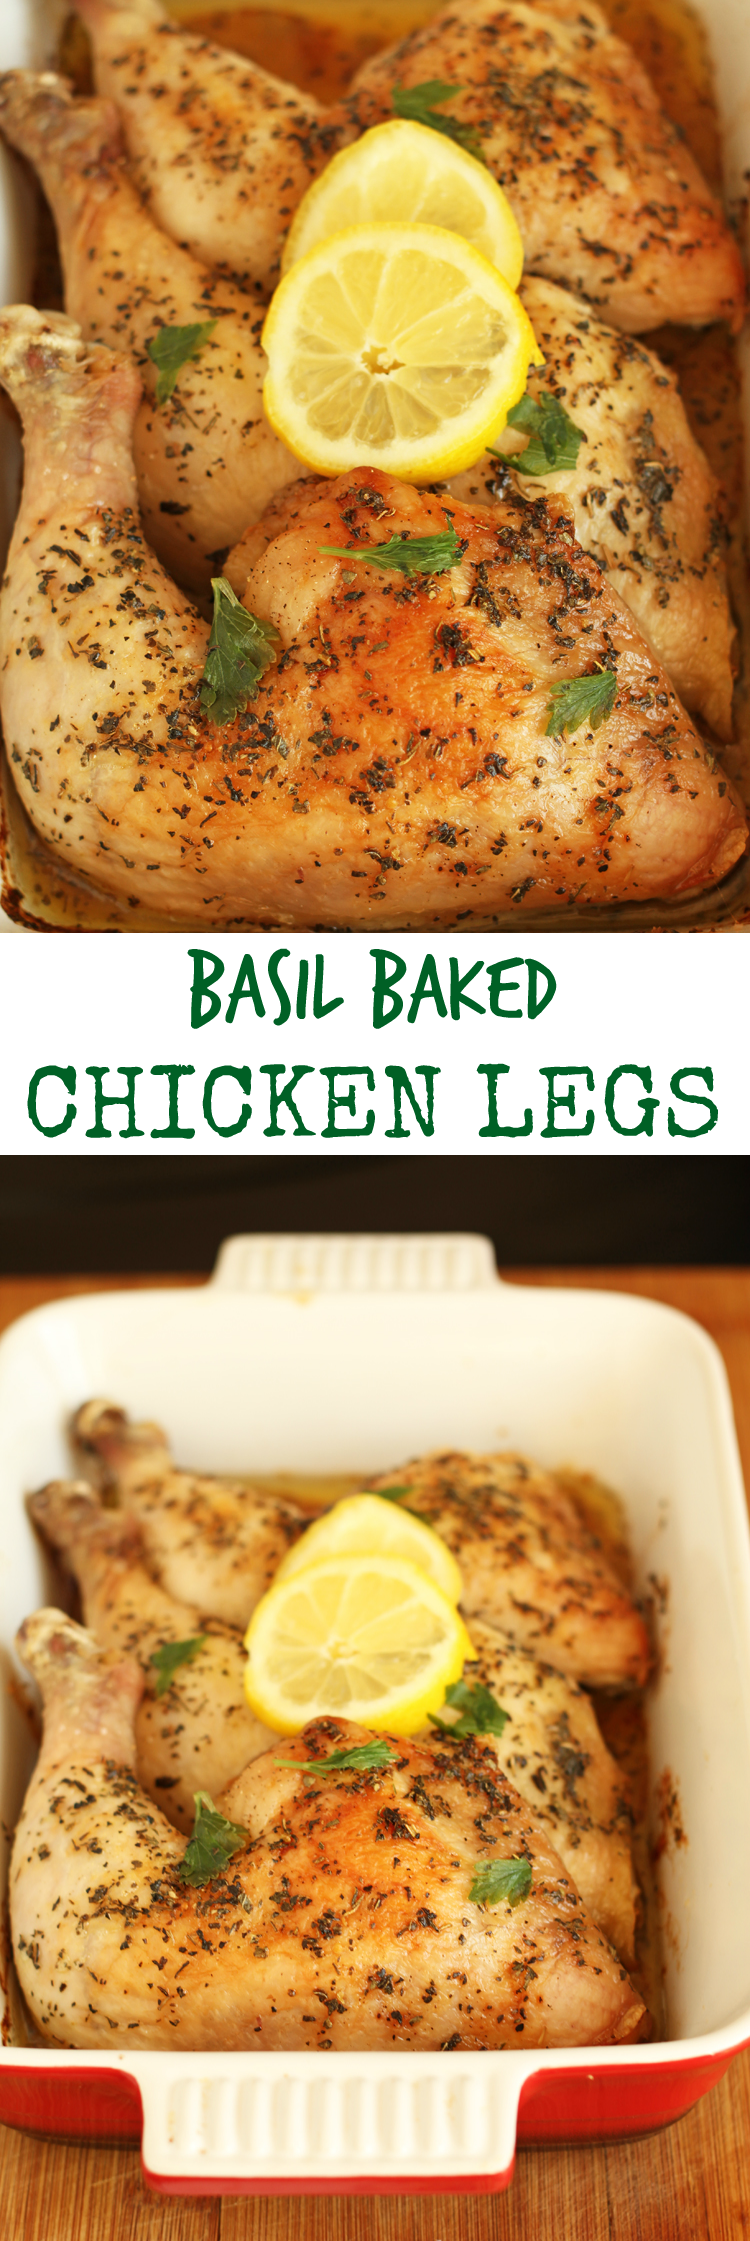 Easy to make Basil Baked Chicken Legs topped with butter I Oh My Creative